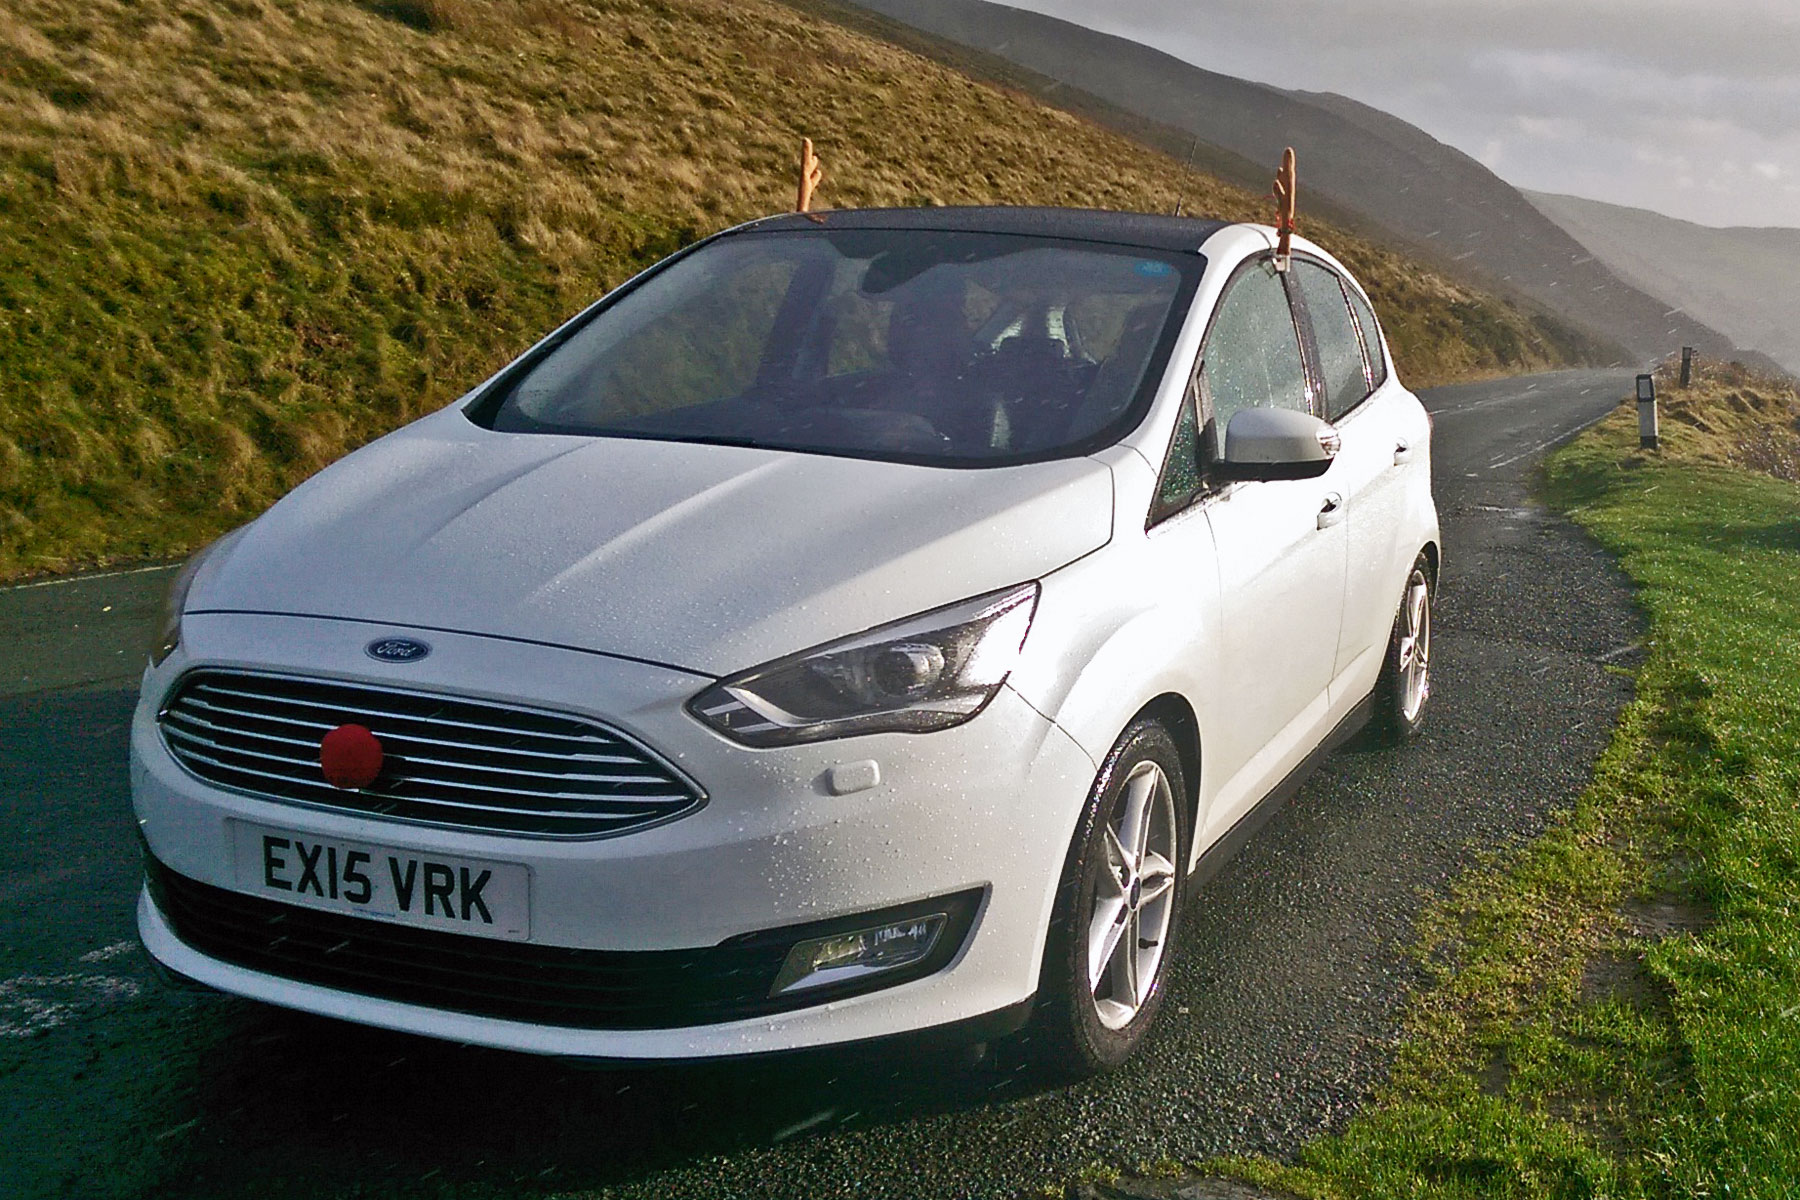 2015 Ford C-Max 1.5 TDCi Titanium X: what happens when driver assistance systems go wrong?